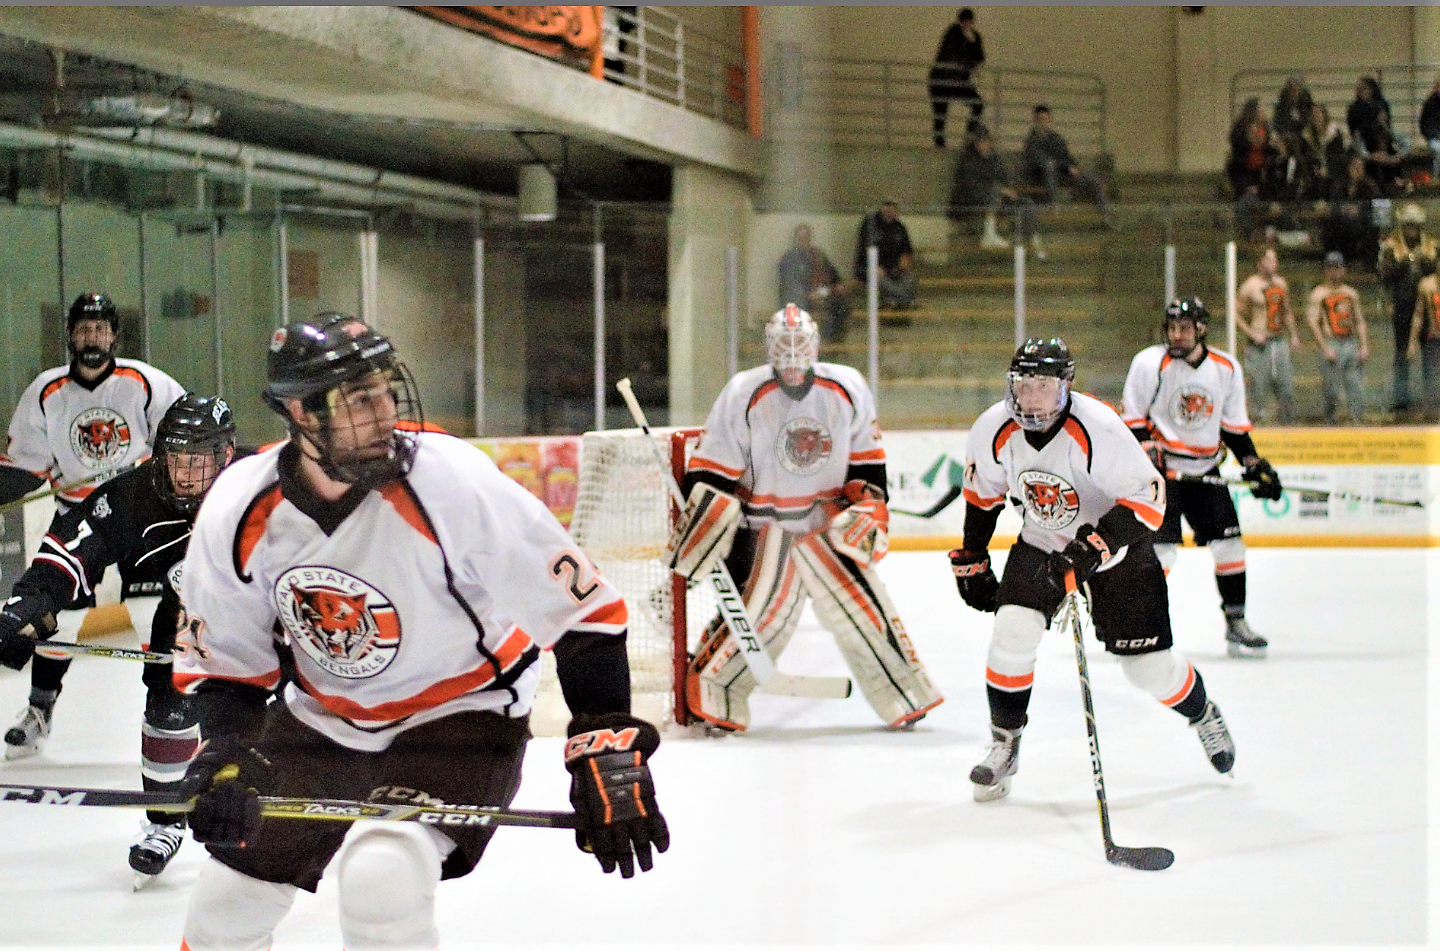 Hugo Petit and Zach Nieminen each had a goal as the Men's Hockey team lost to Geneseo 5-2 in the SUNYAC semifinals Saturday night.